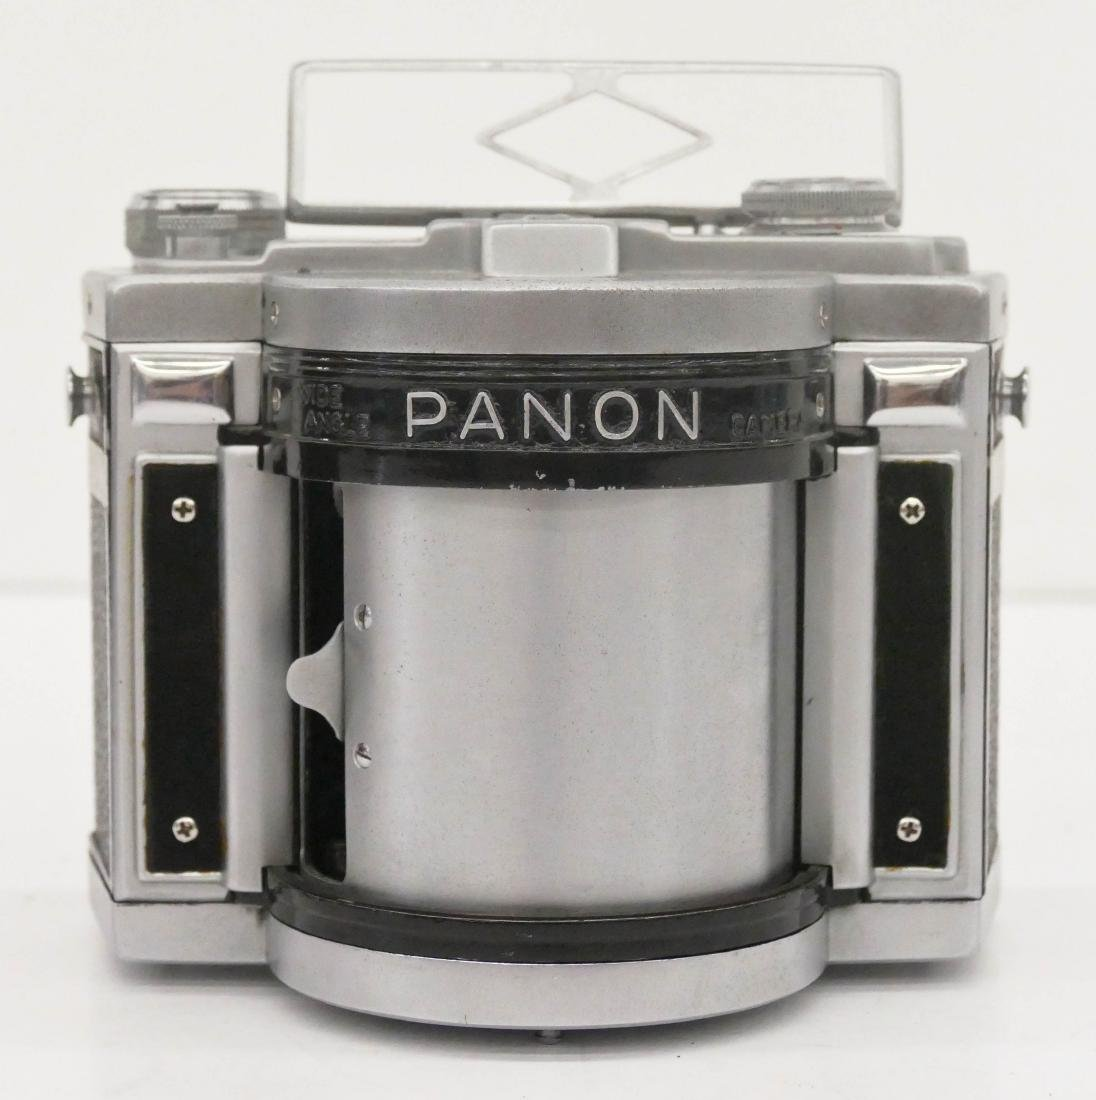 Panon Panox Wide Angle Camera with Case. A scarce - 2